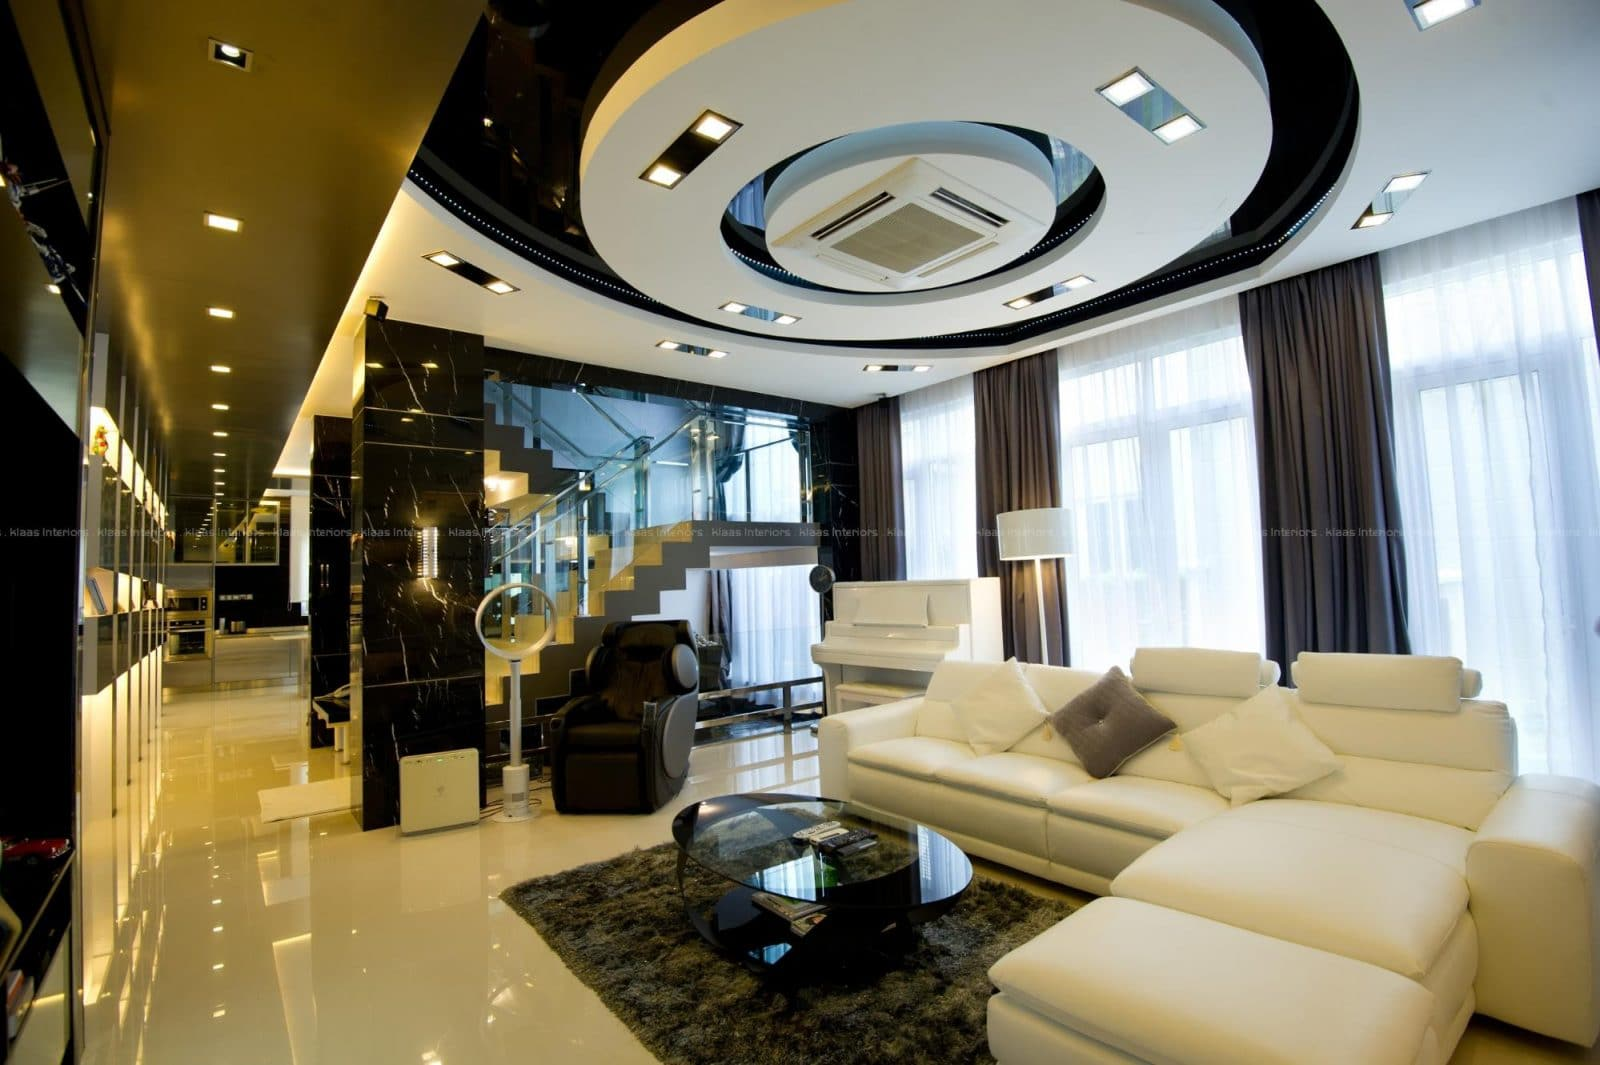 bungalow design with curved high ceiling design